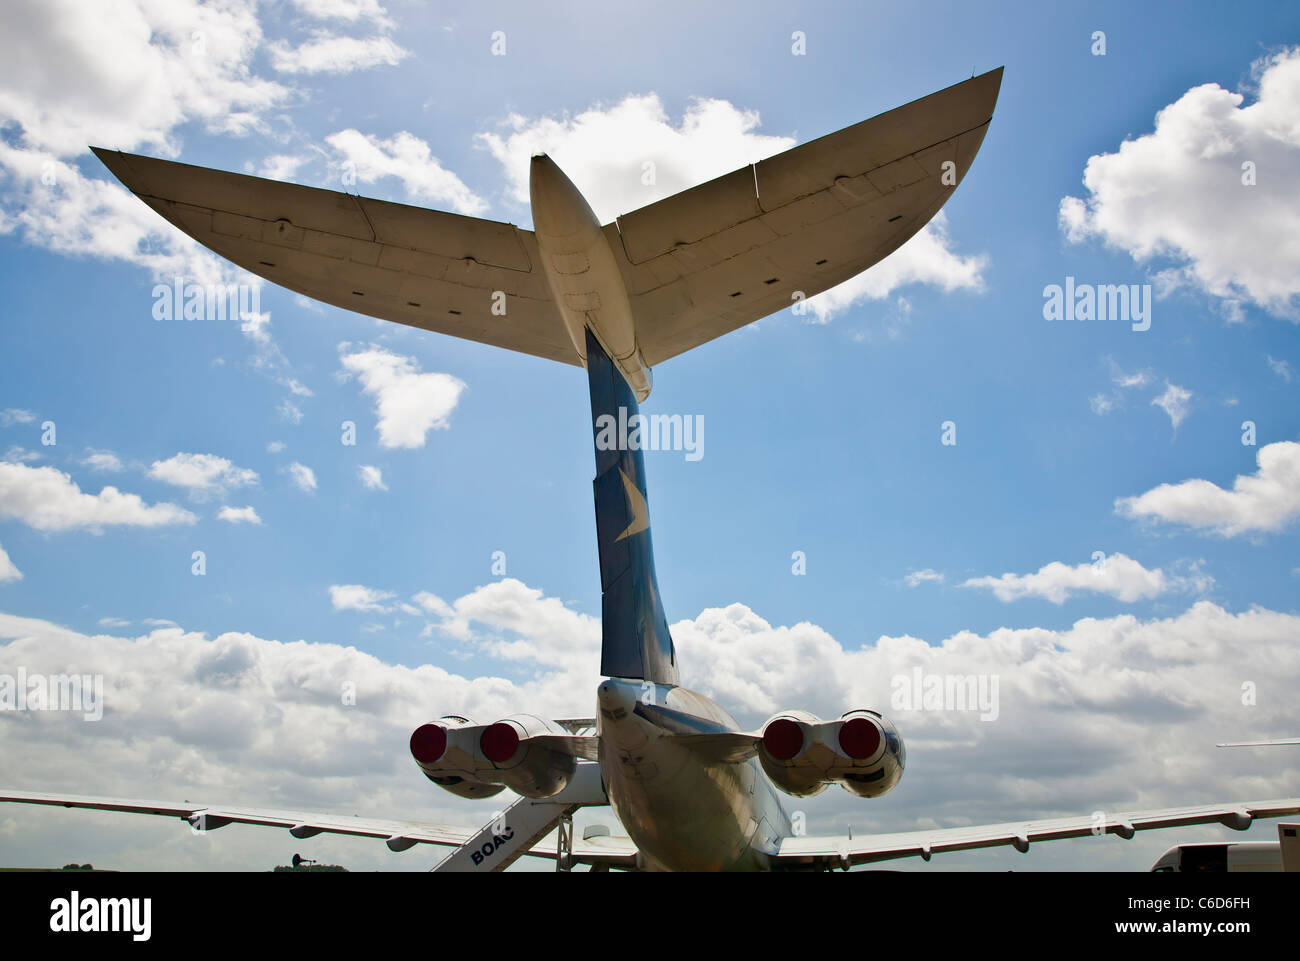 Tail of a BOAC VC10 airoplane - Stock Image